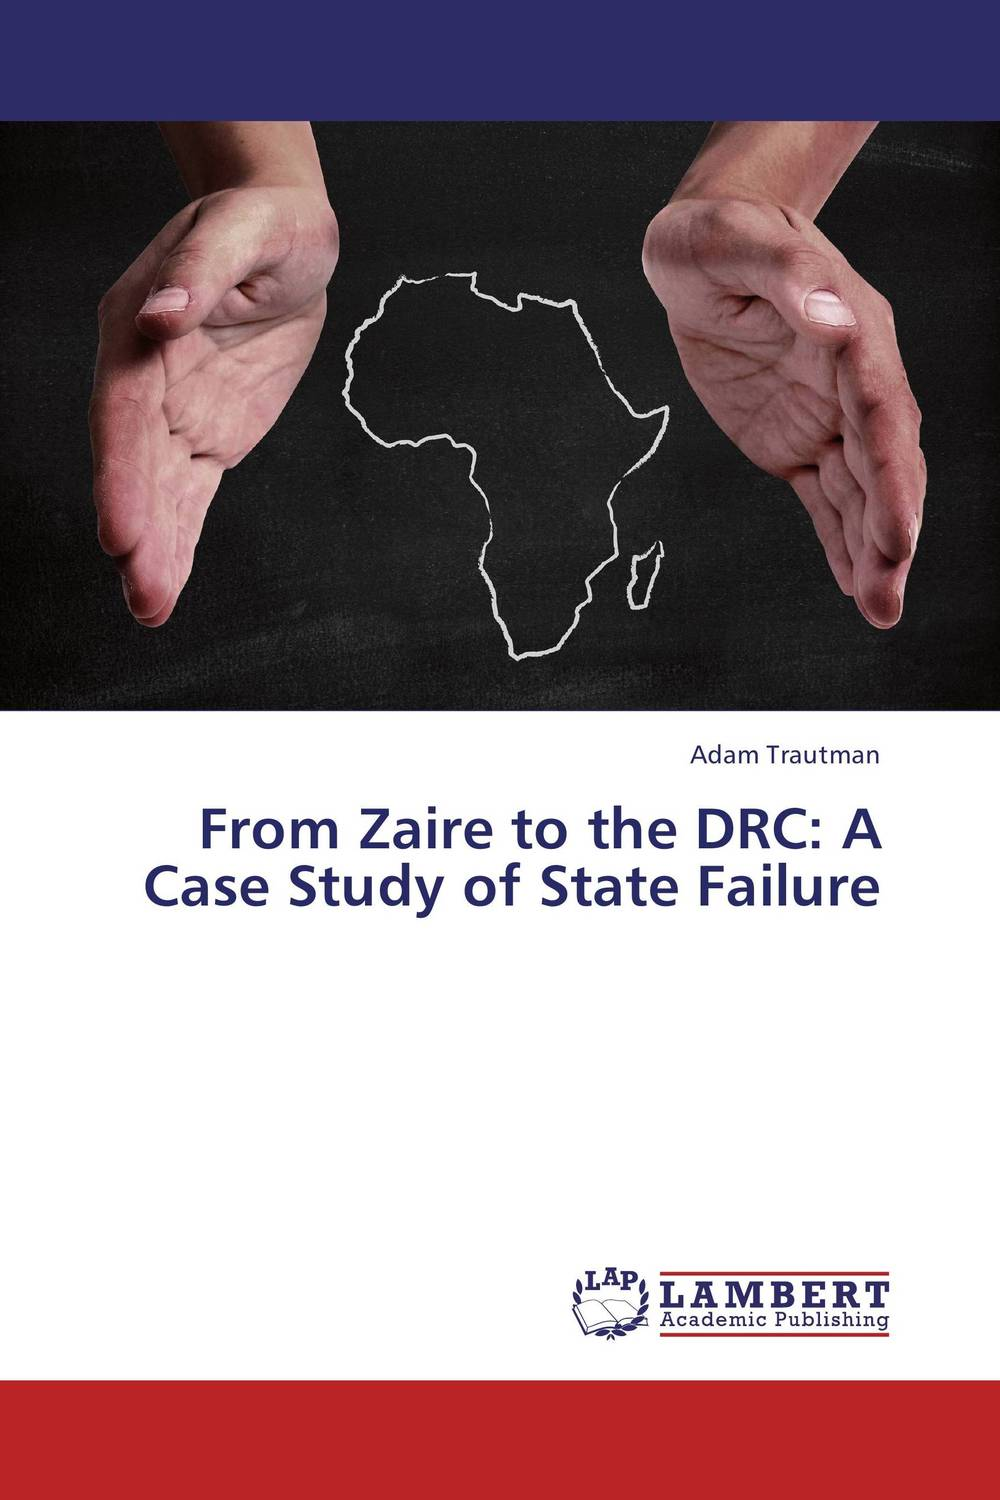 From Zaire to the DRC: A Case Study of State Failure